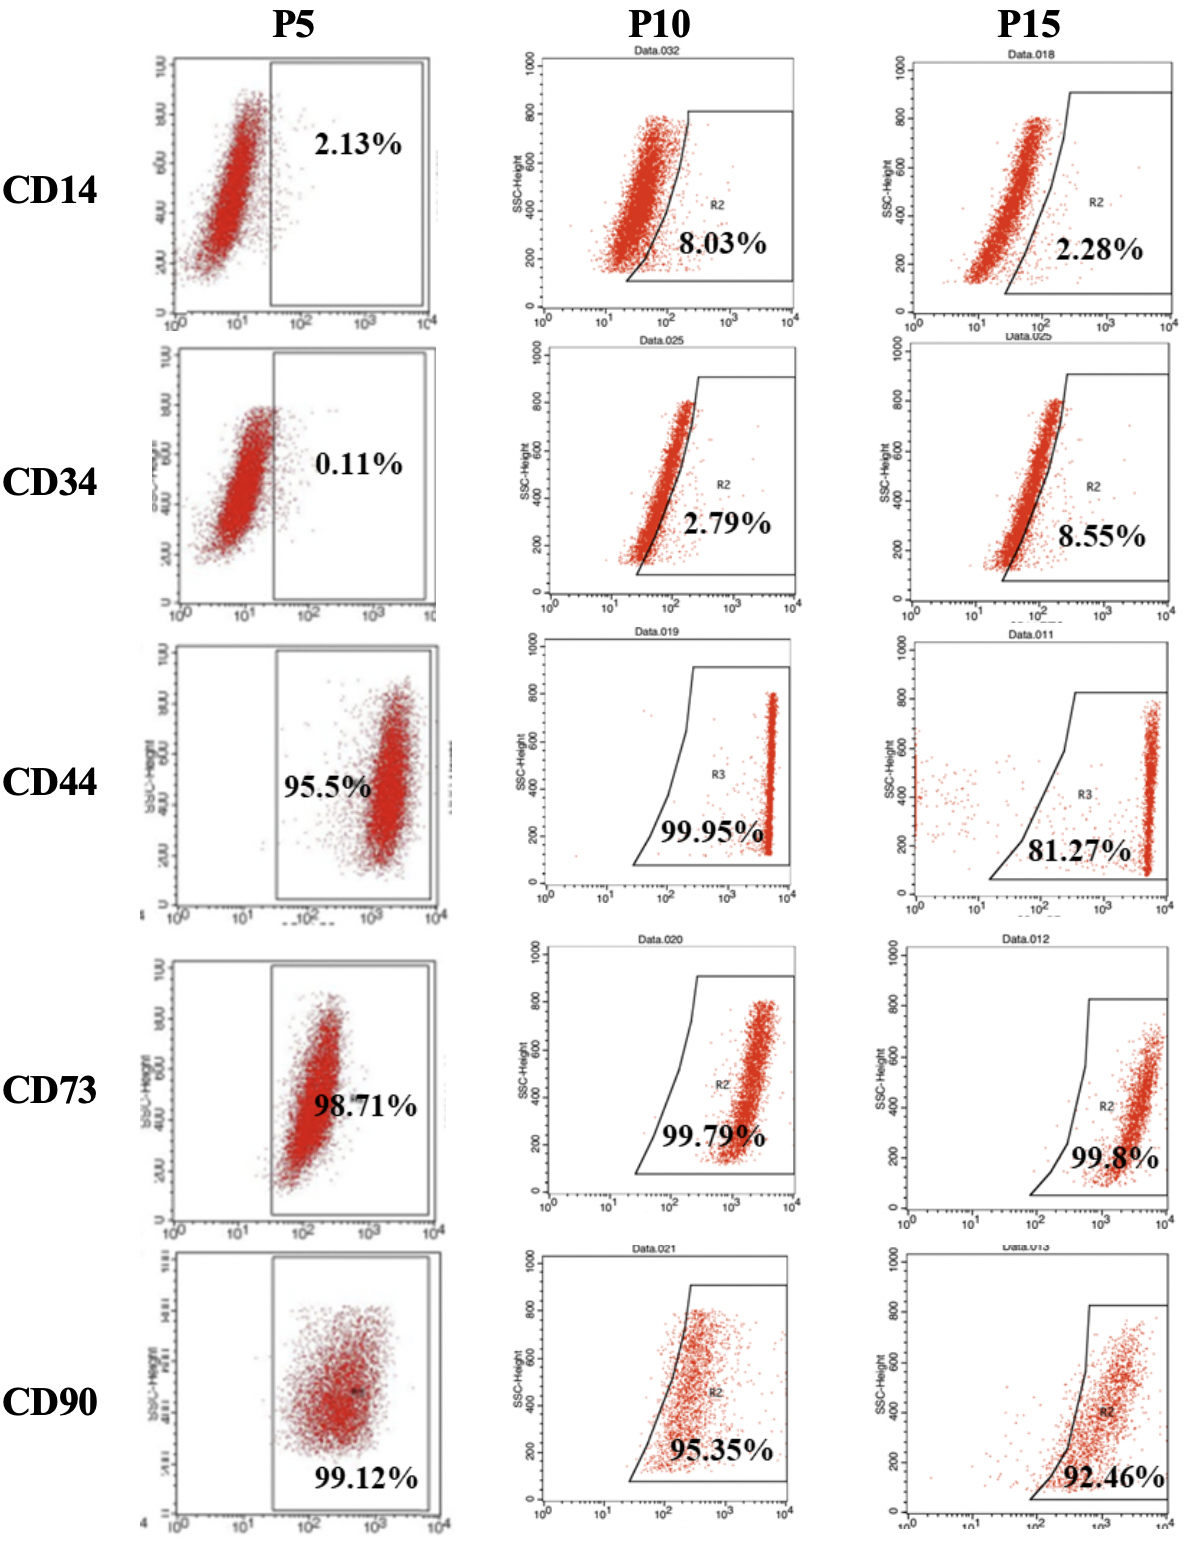 Figure 2  . The hBMSCs at the three passages showed a high expression of CD44, CD73, and CD90. On the other hand, CD14 and CD34 were expressed in all passages by about 10% of the hBMSCs.